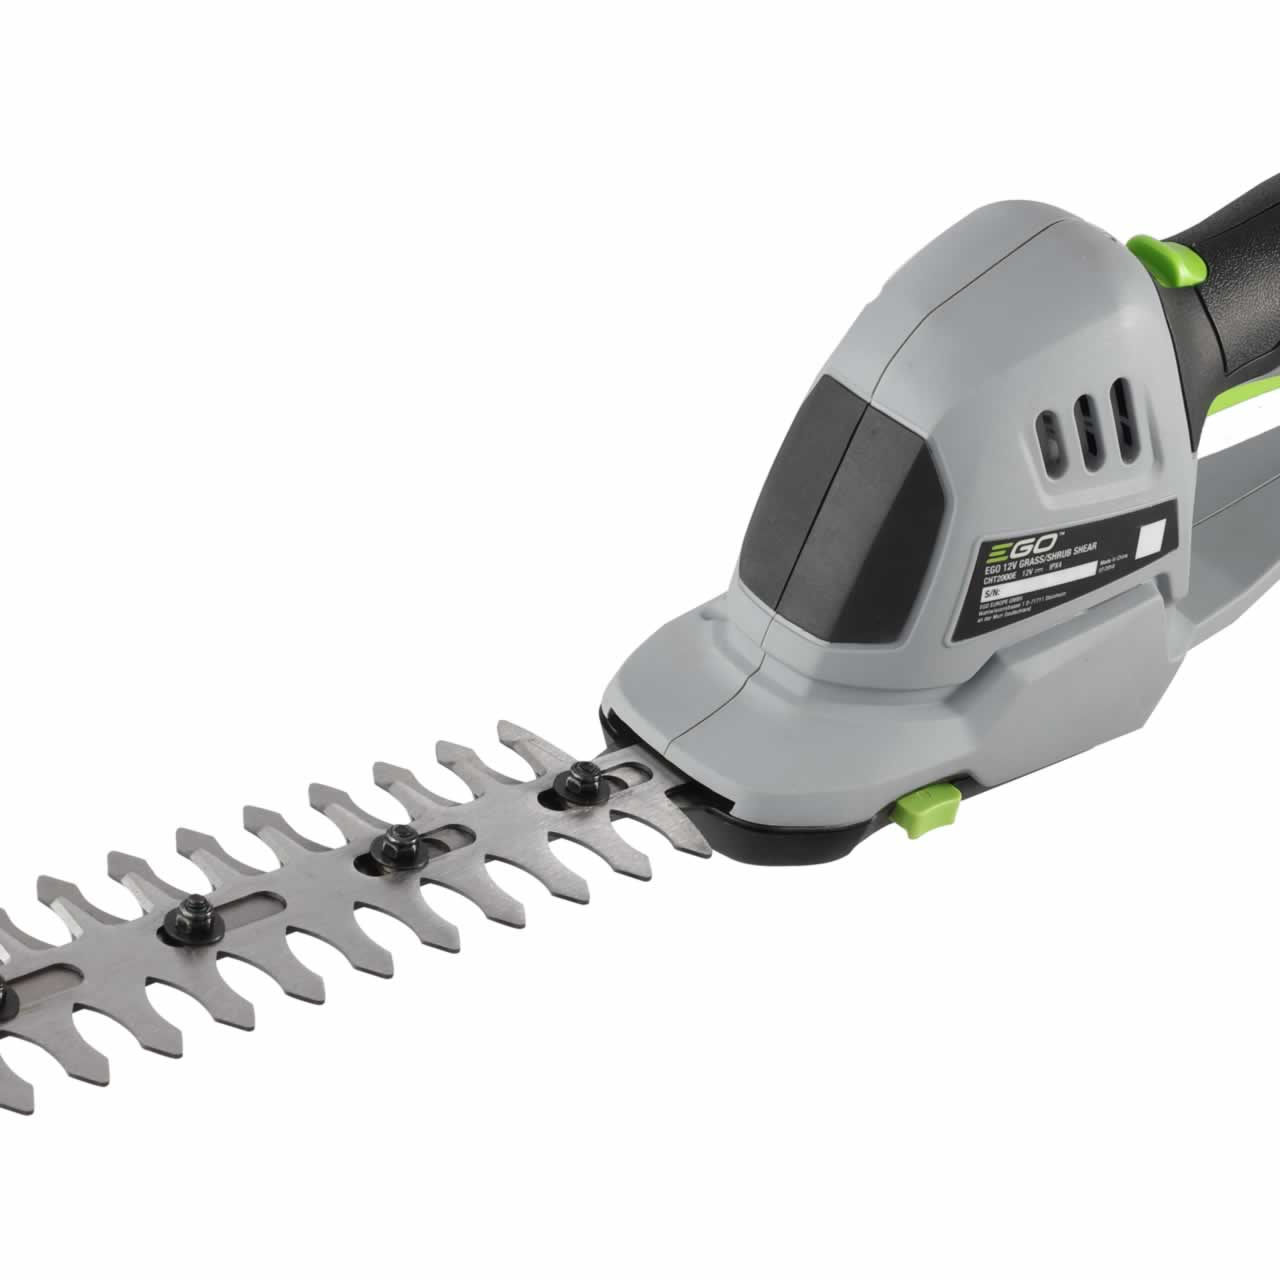 Ego CHT2001E 12v Cordless Grass Shear Kit (With 2.5Ah Battery & Standard Charger)